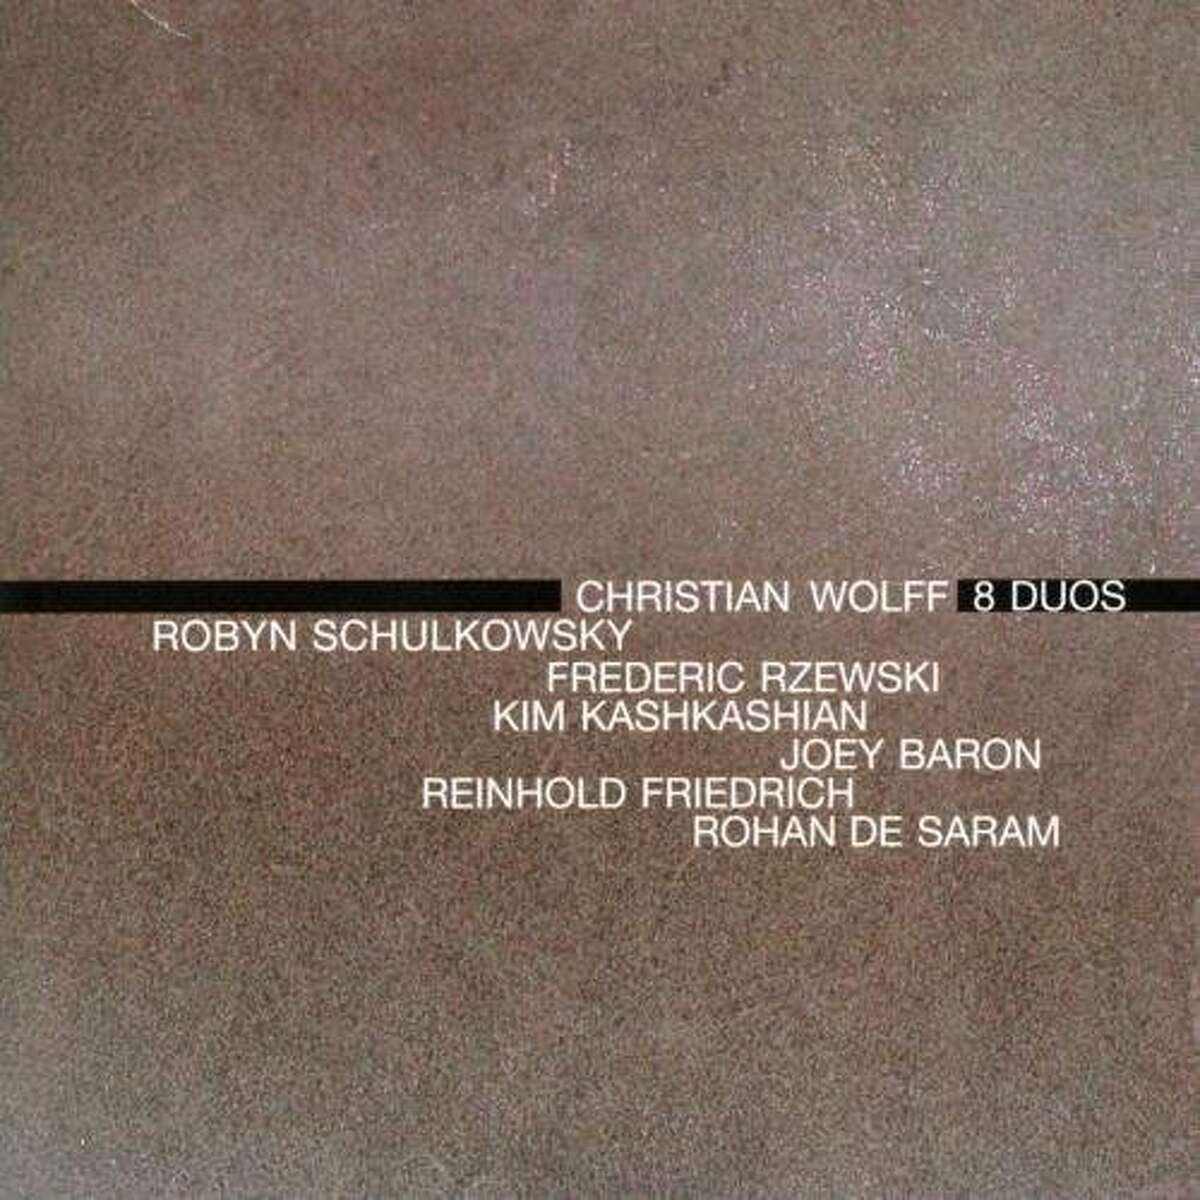 Christian Wolff CD cover